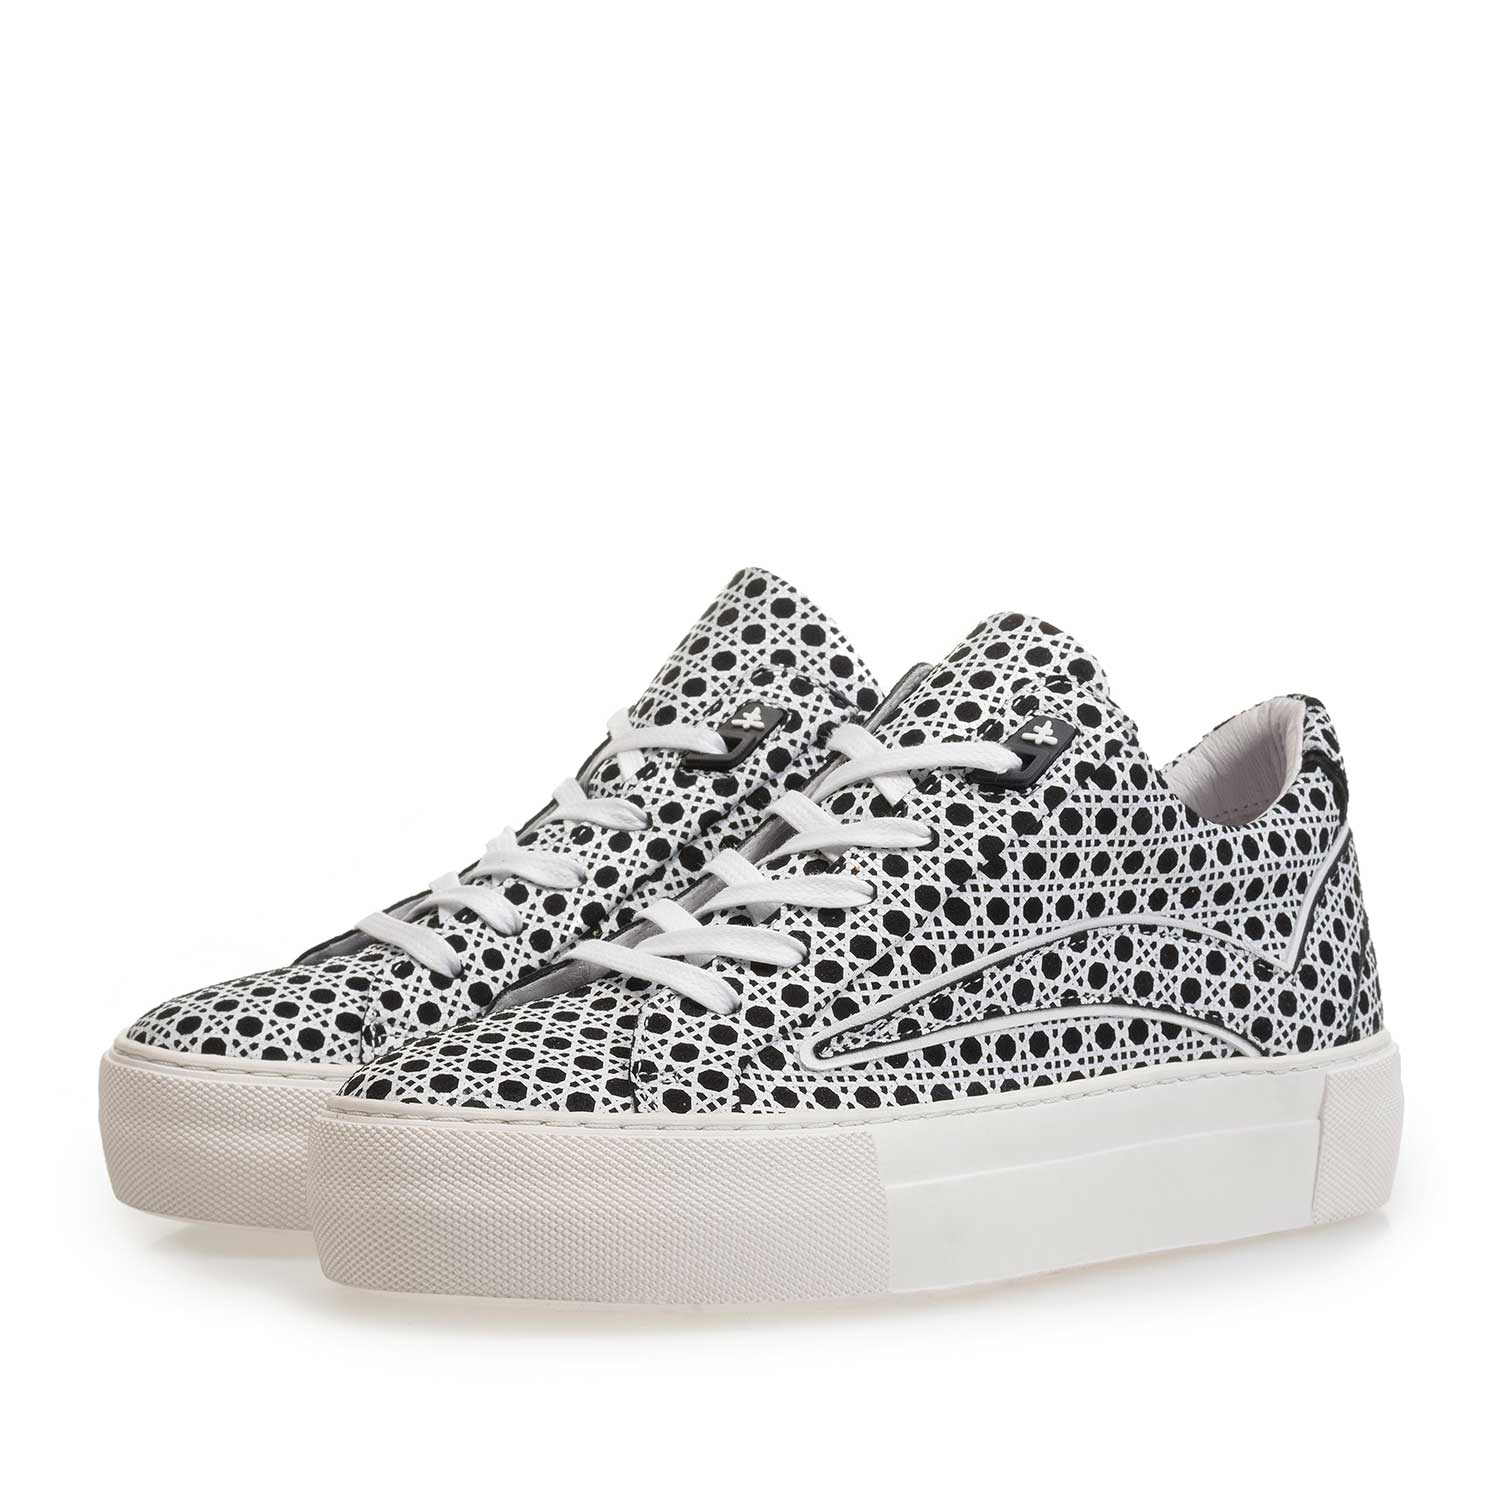 85259/00 - Black-and-white suede leather sneaker with print